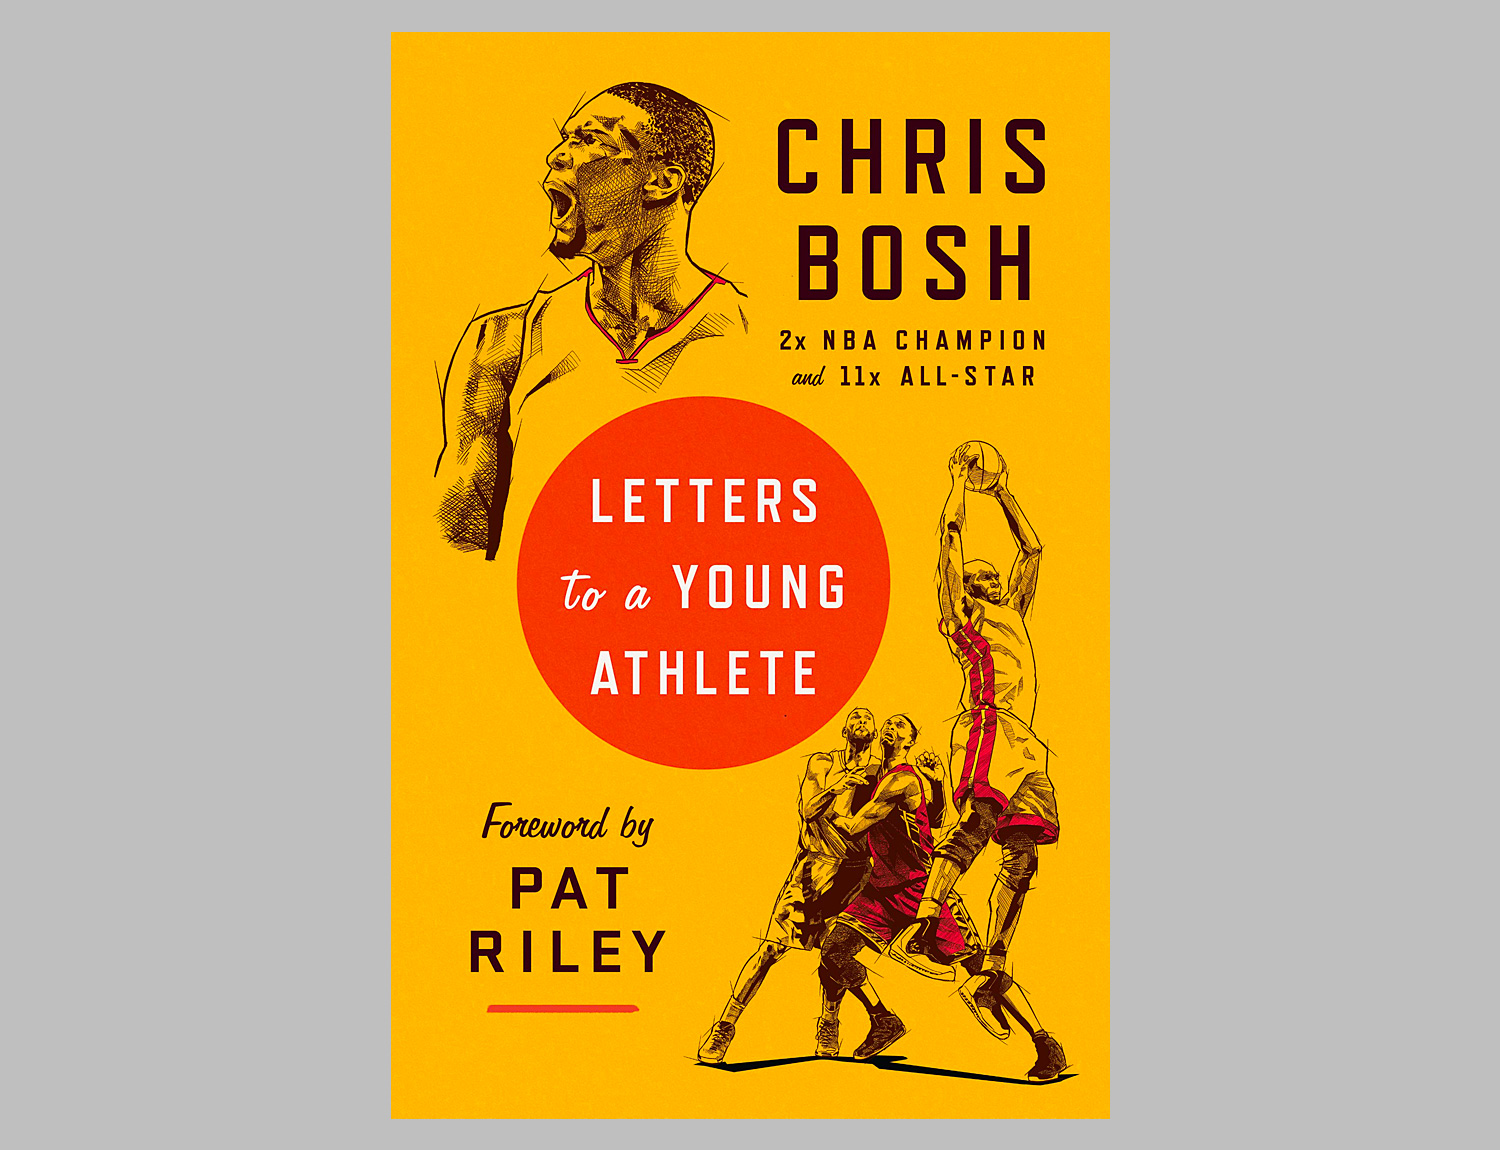 Letters to a Young Athlete by NBA Icon Chris Bosh at werd.com